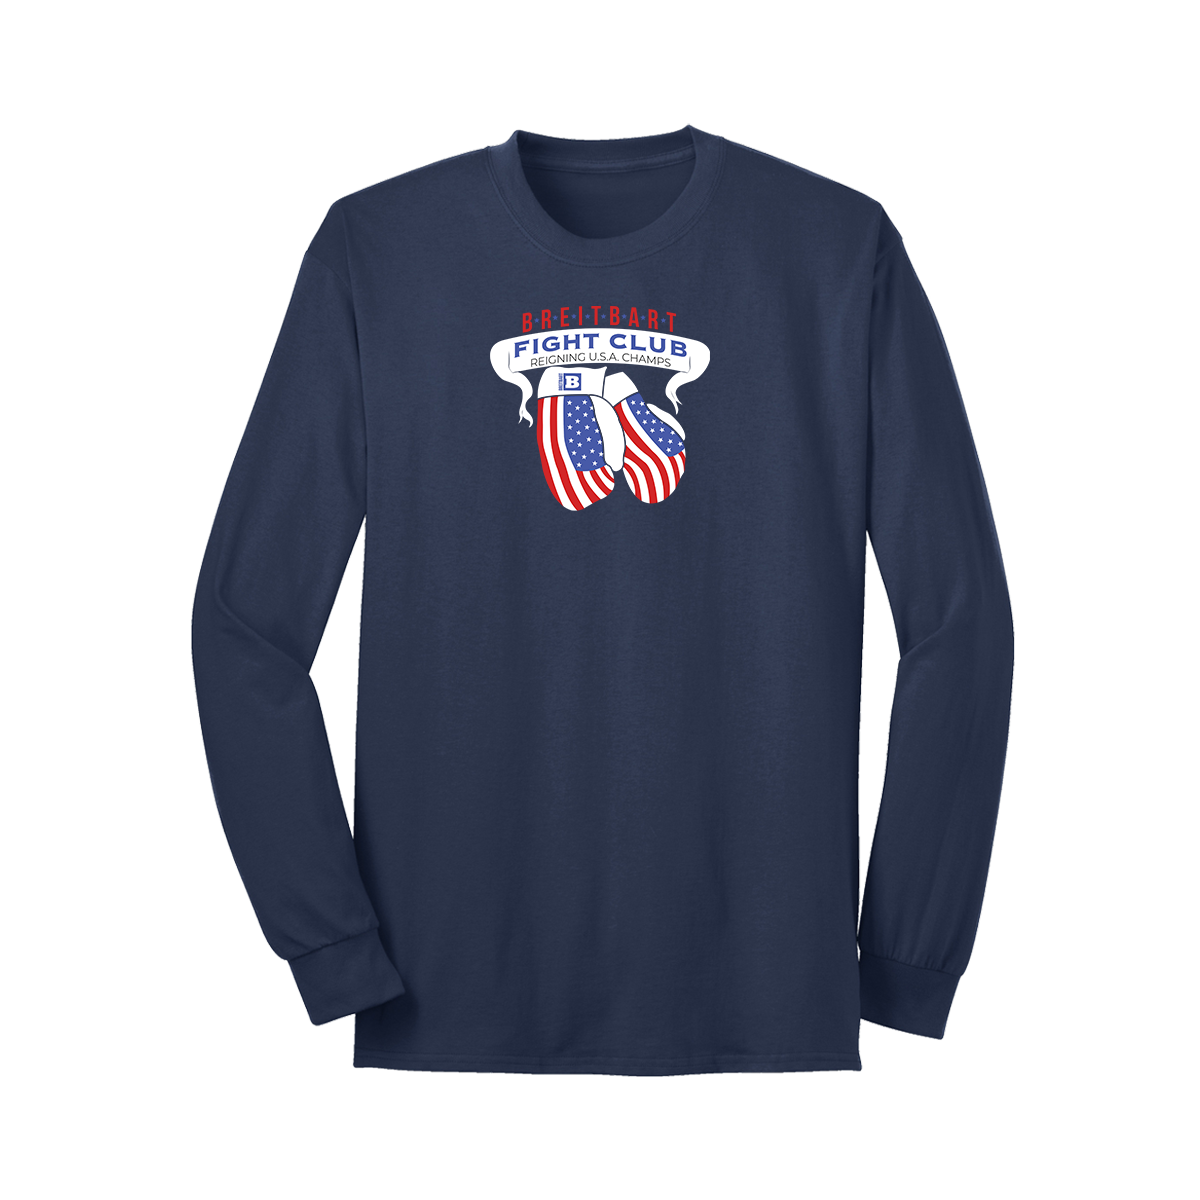 Breitbart Fight Club USA Champs Long Sleeve T-shirt - Navy